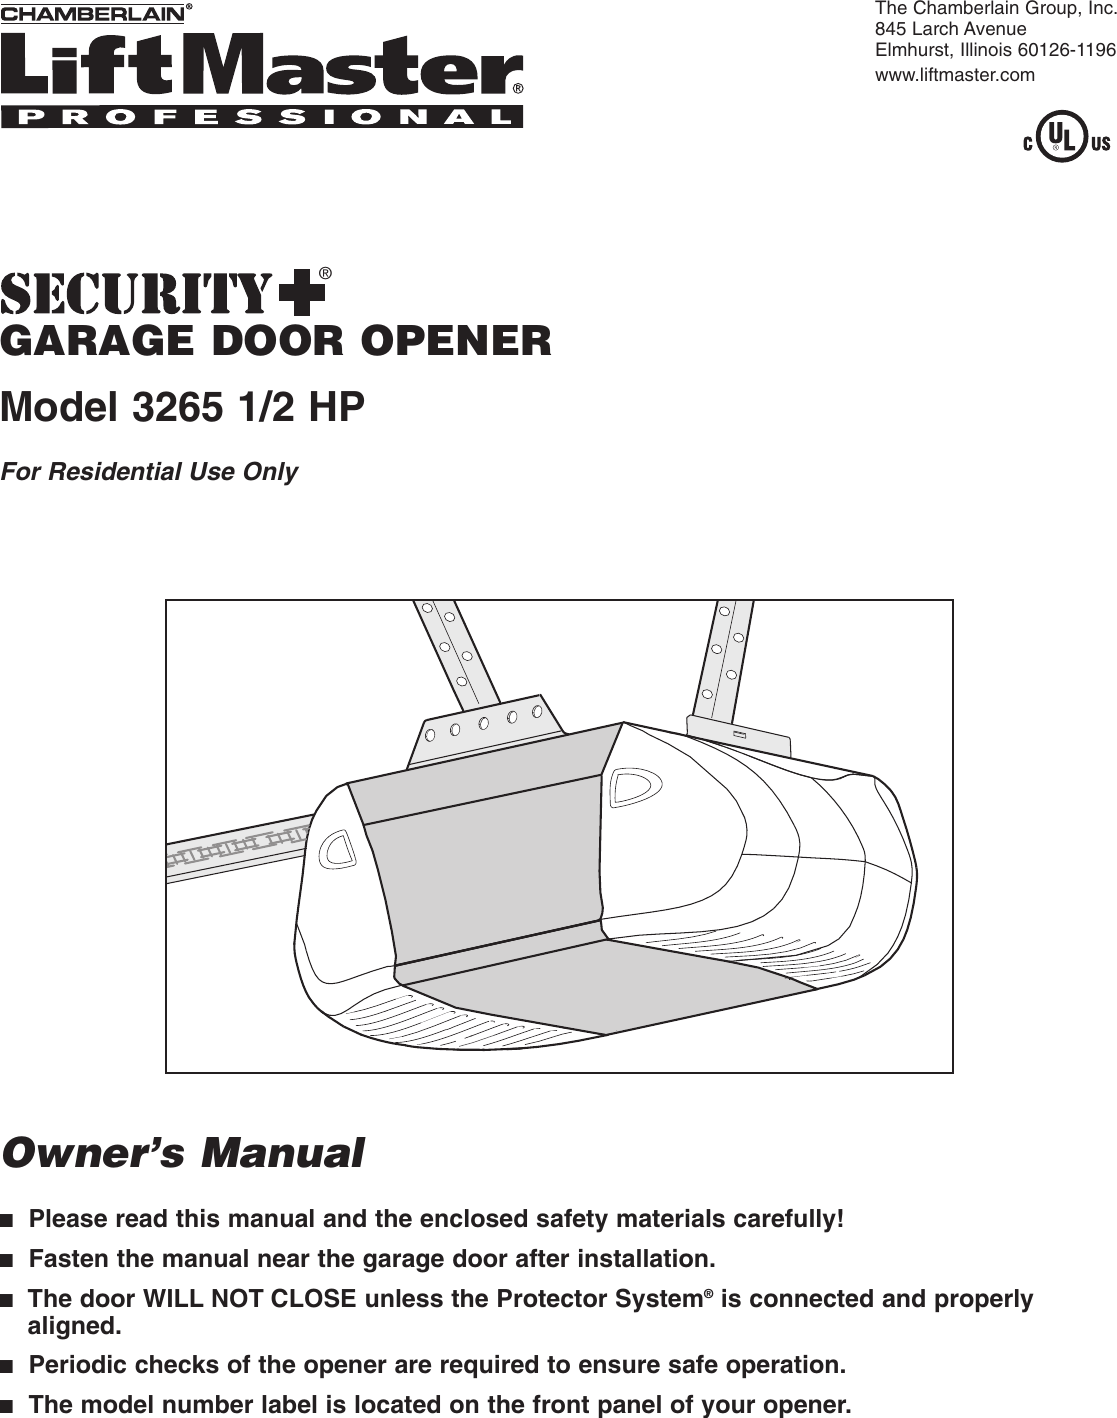 Liftmaster 3265 267 Owners Manual 114a3044fen Chamberlain Garage Door Wiring Diagram Additionally